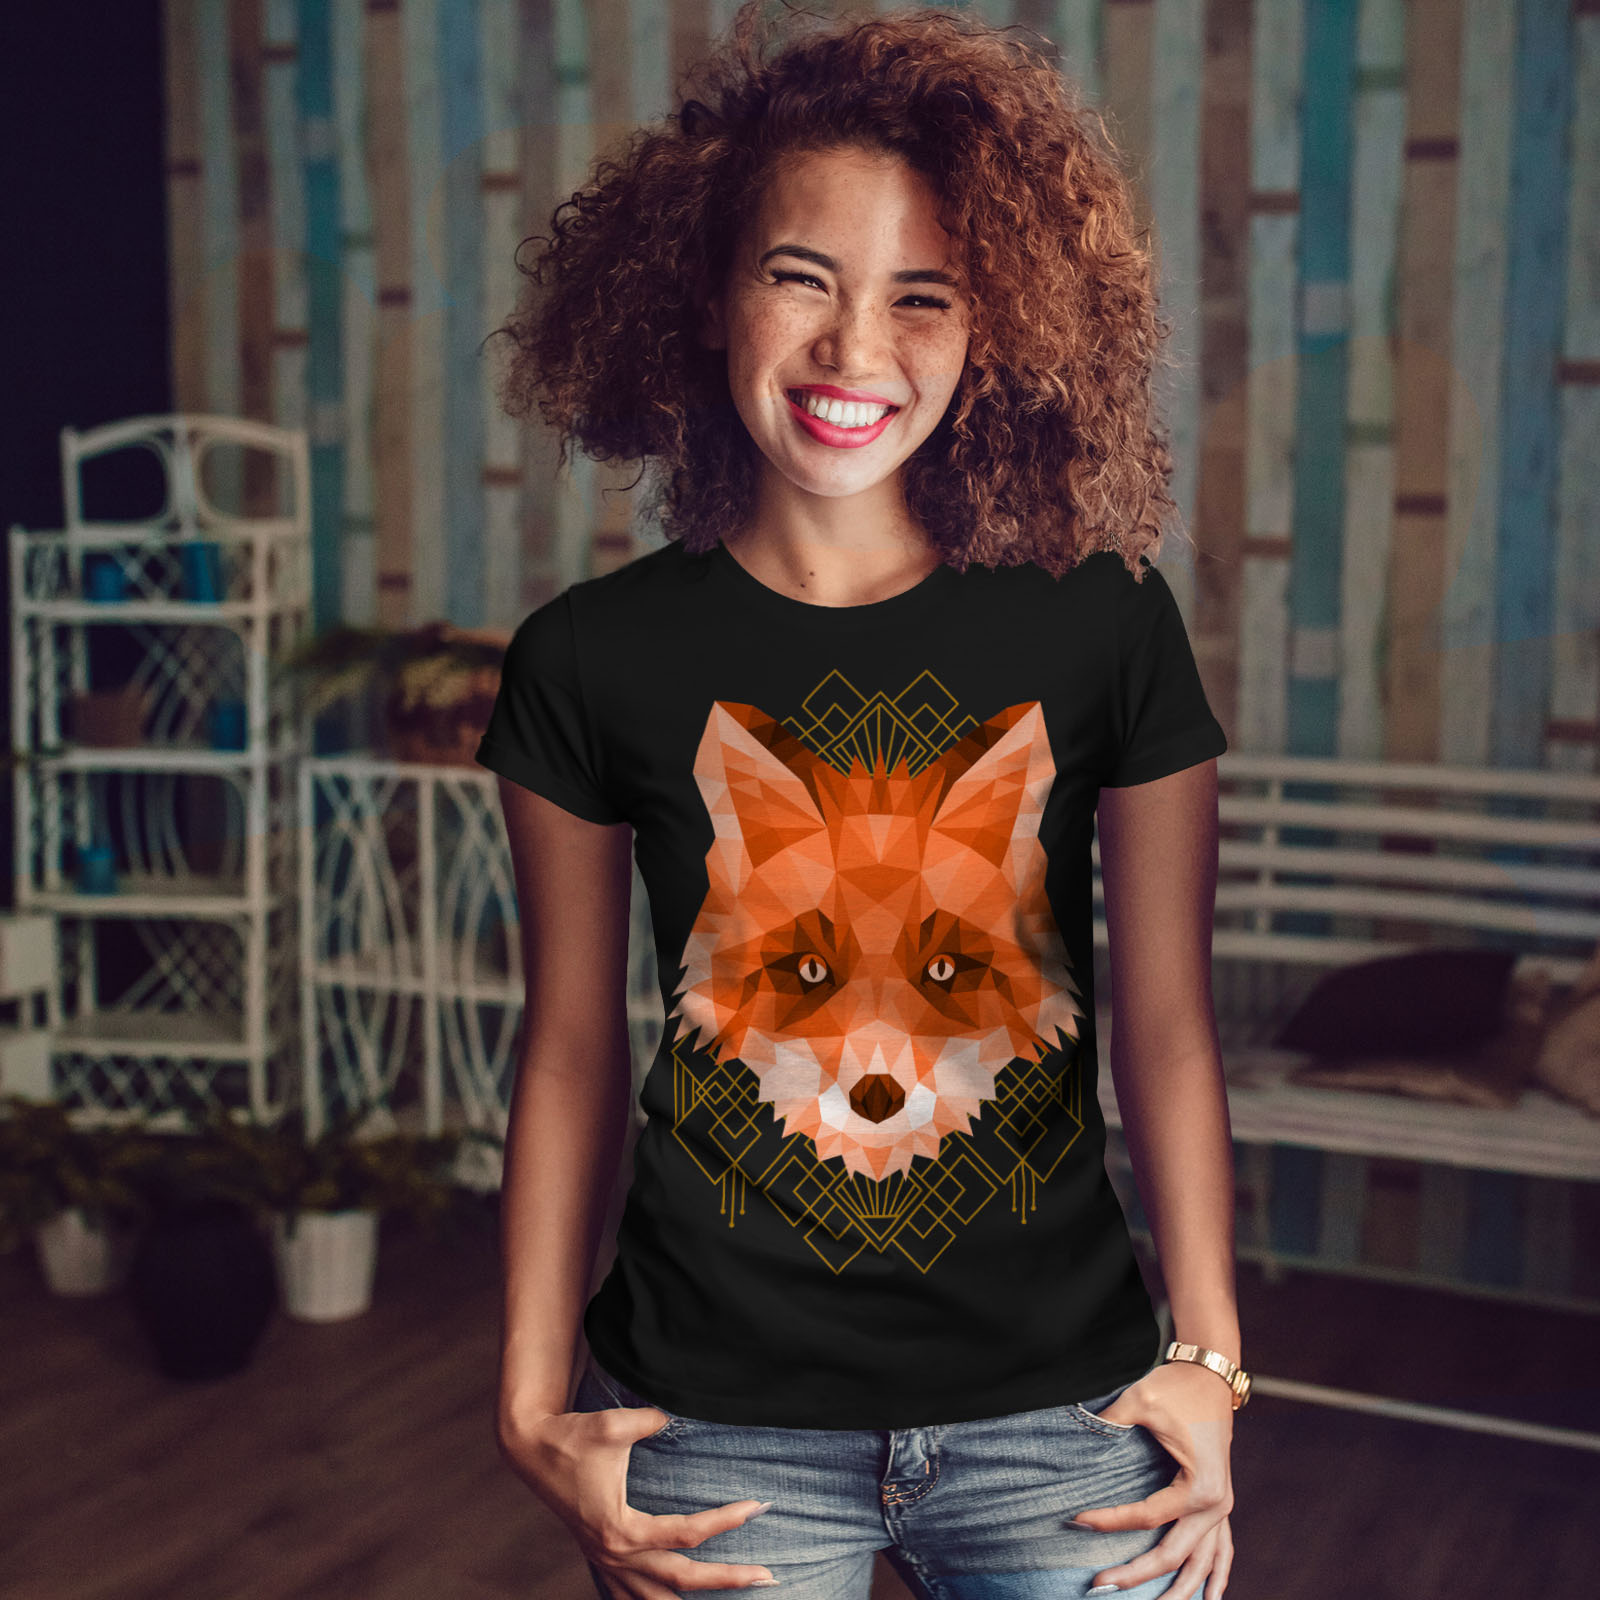 Wellcoda-polygonale-Fire-Fox-T-shirt-femme-animal-Casual-Design-Imprime-Tee miniature 4